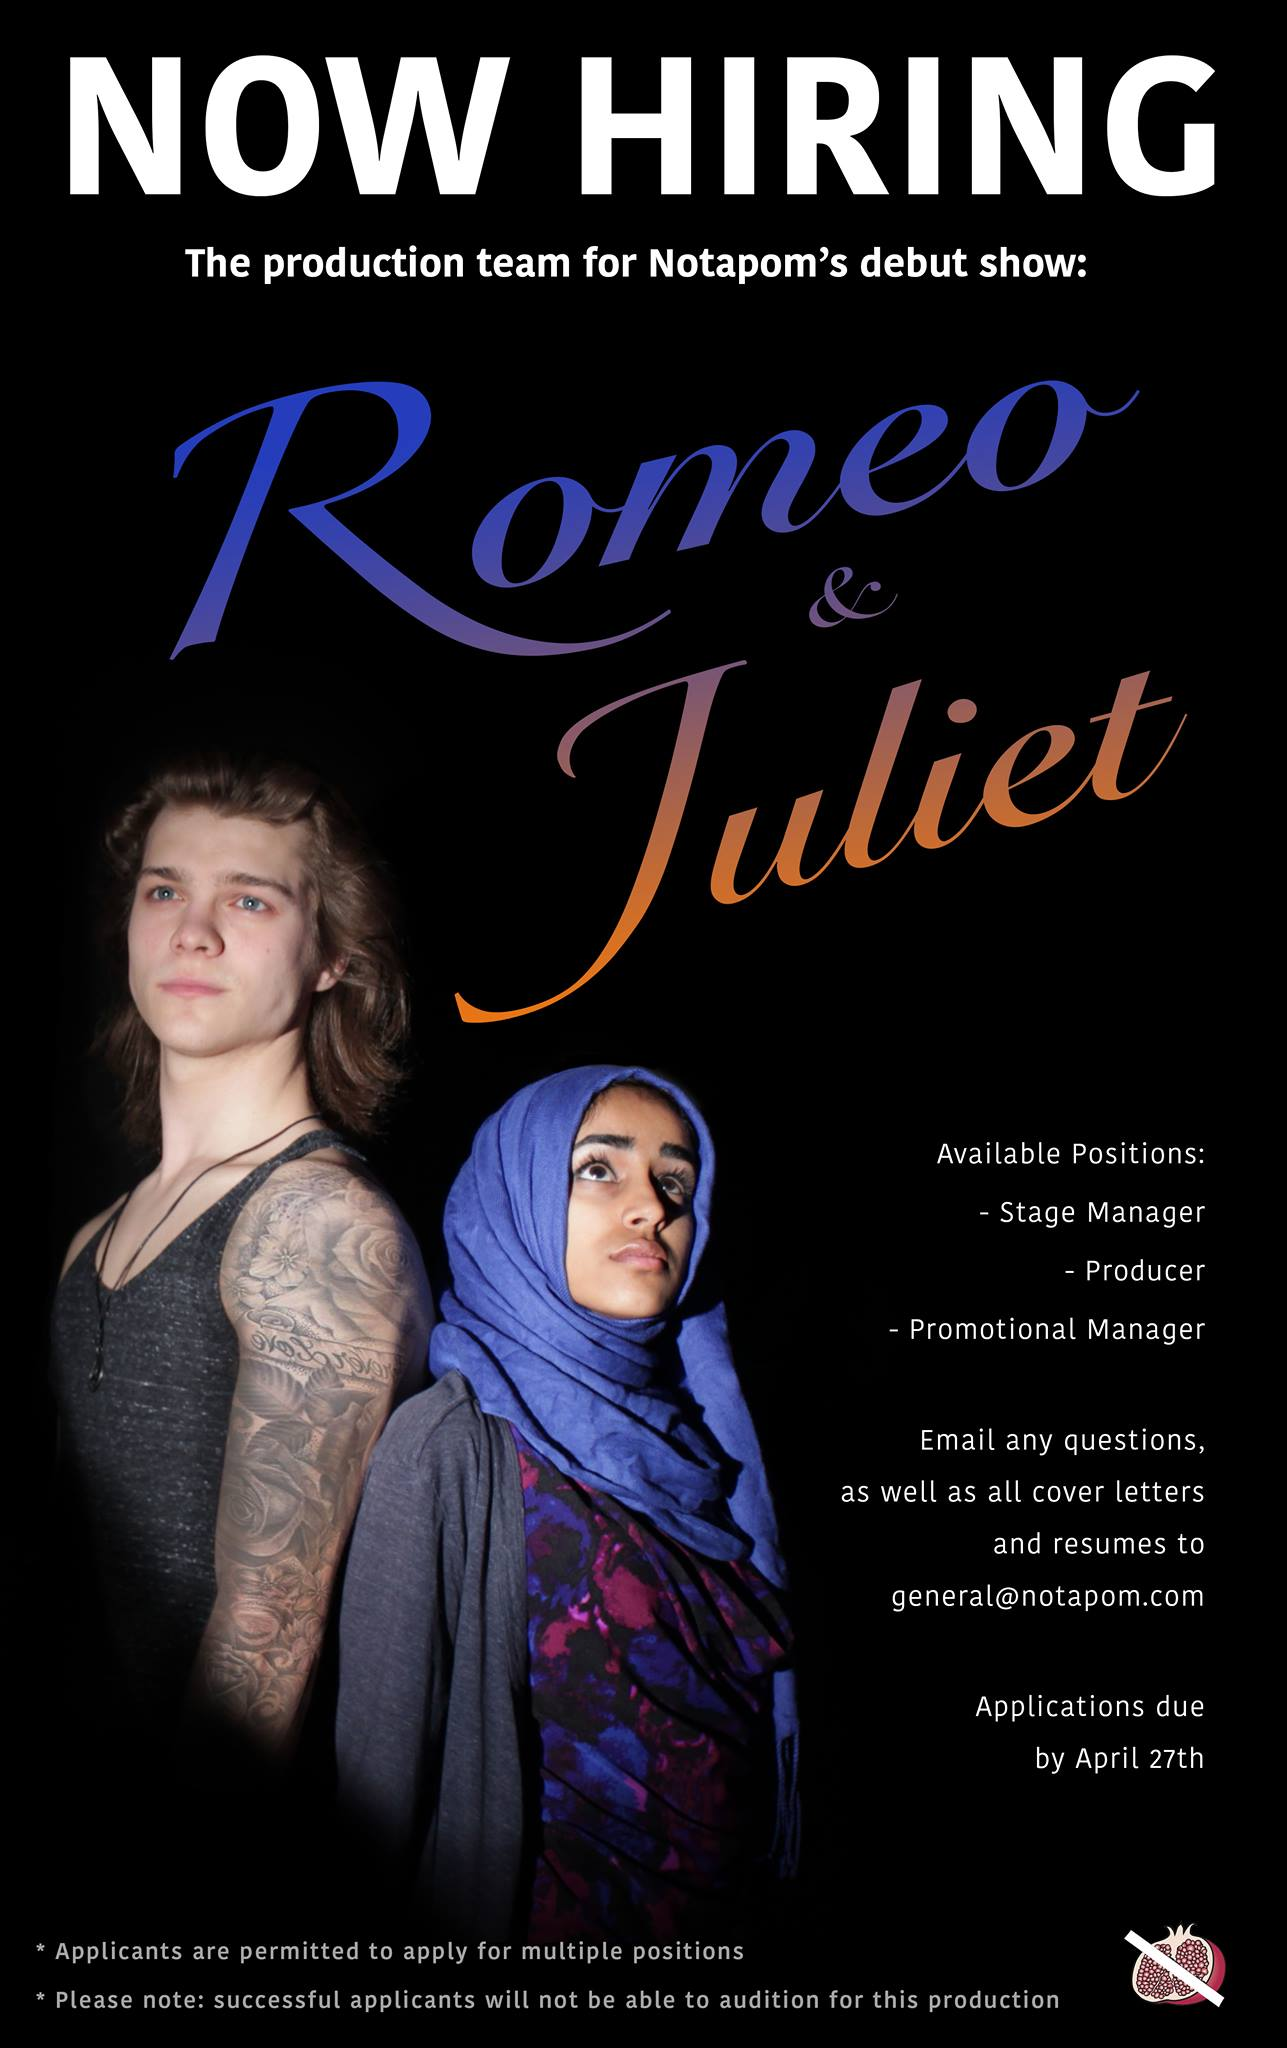 Romeo _ Juliet Poster (Rough).jpg